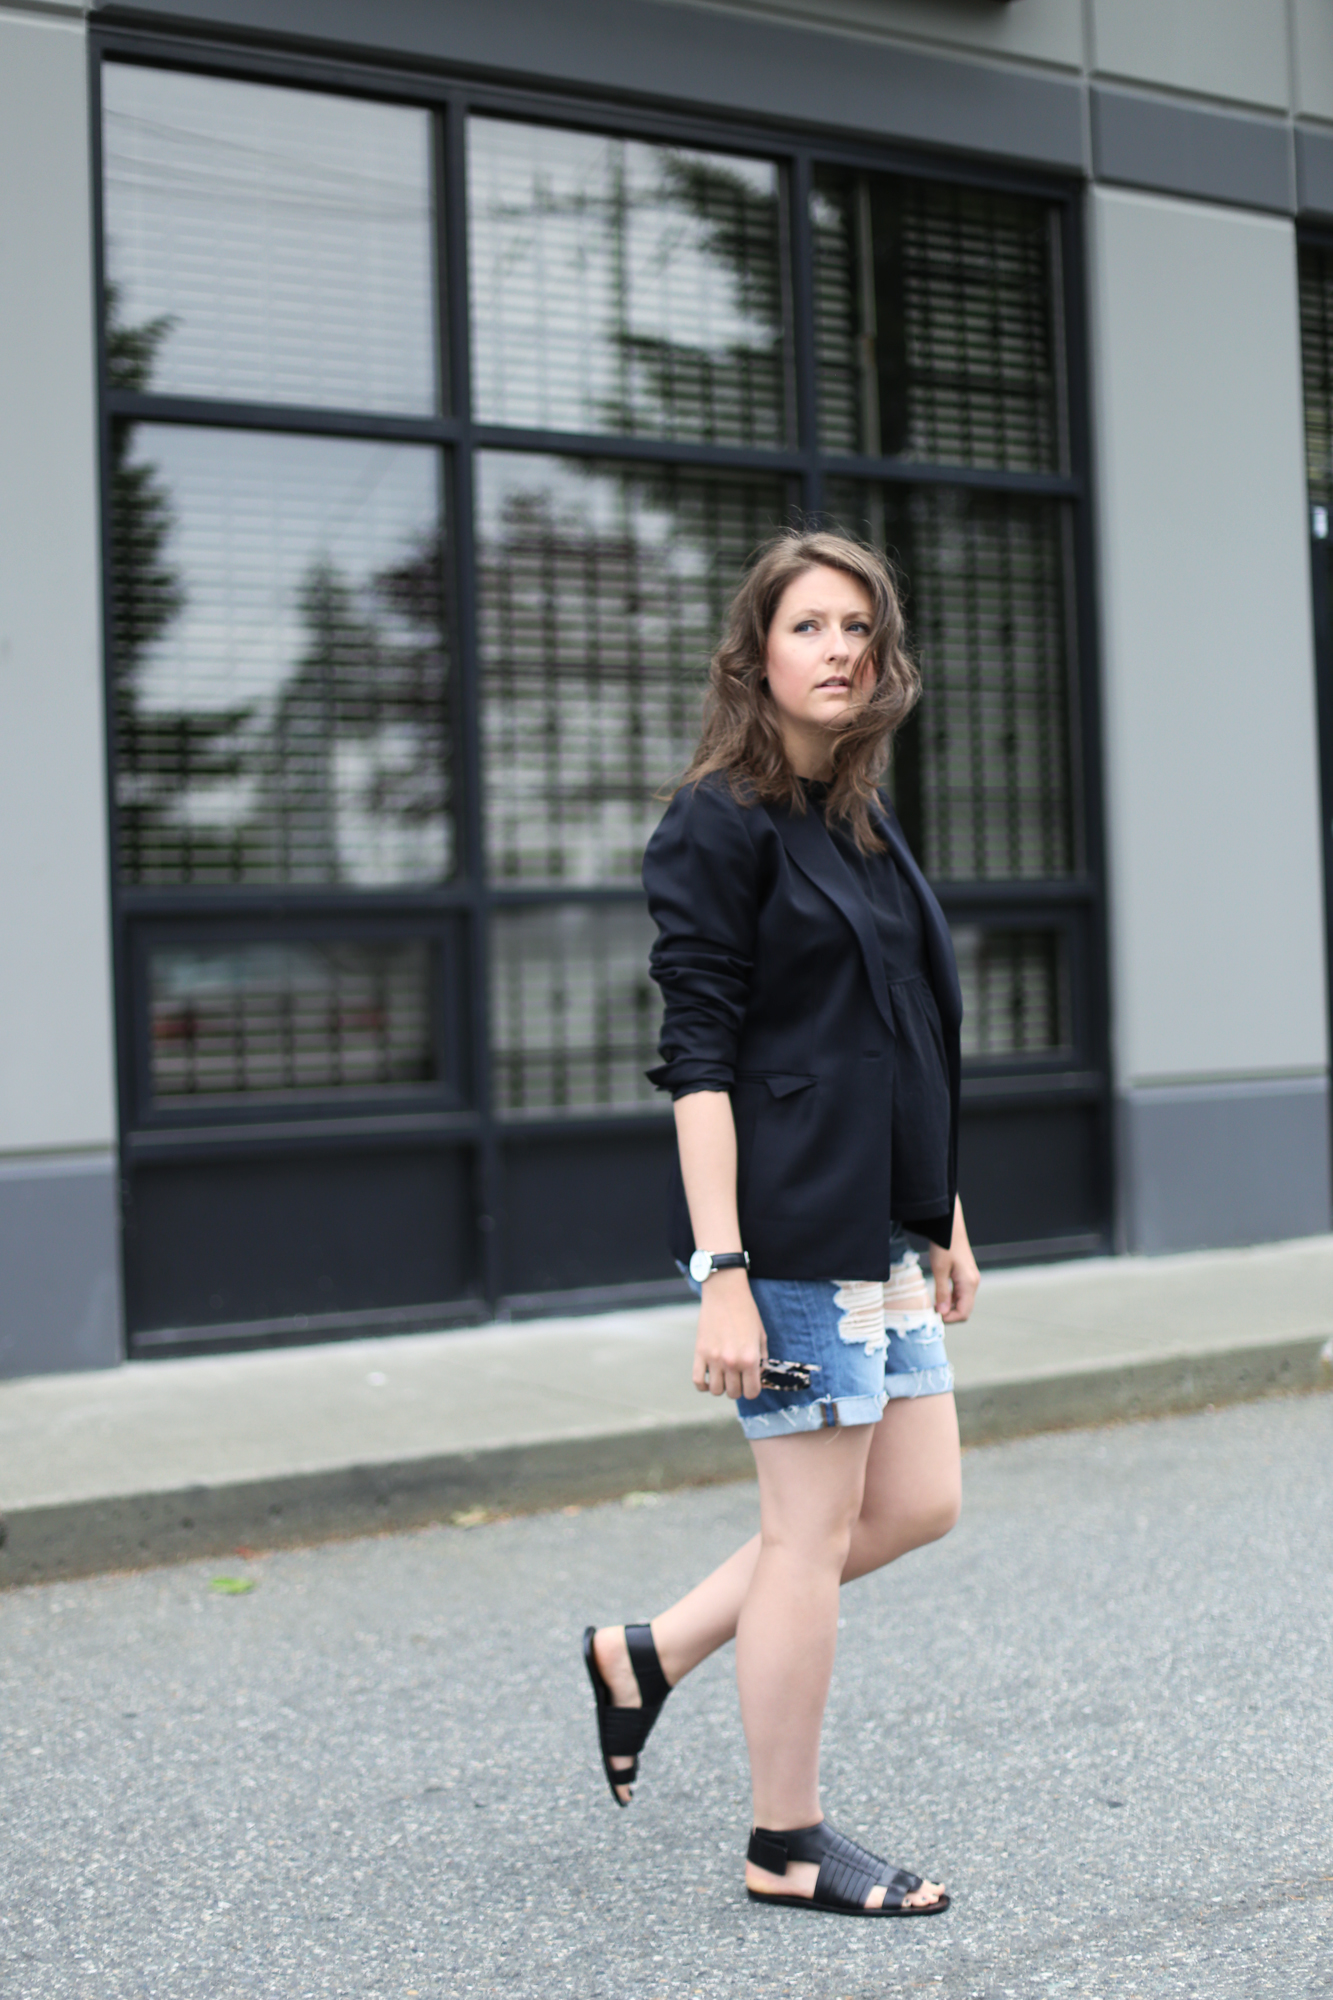 Minimalist street style outfit: Vince sandals, Daniel wellington watch, j brand ripped shorts, and a $15 top.